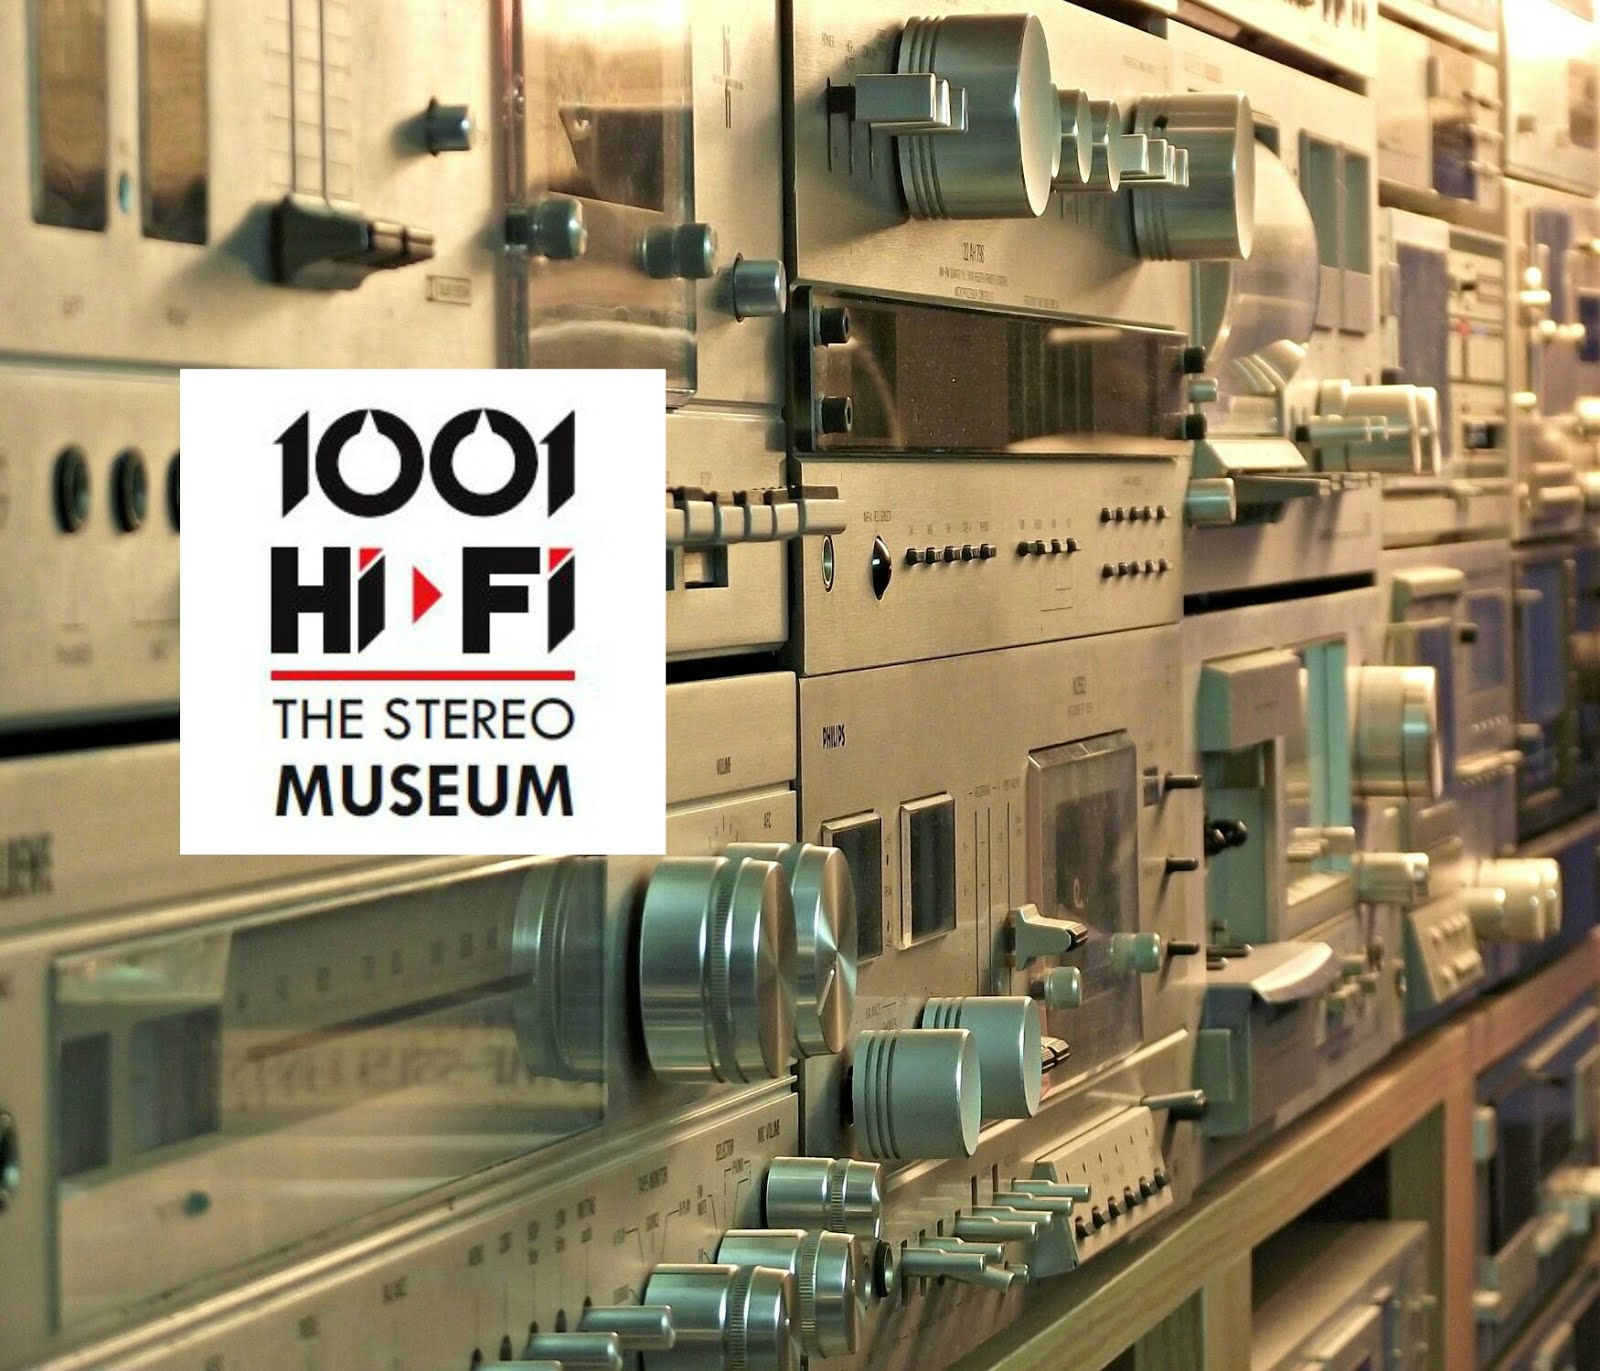 The Stereo Museum